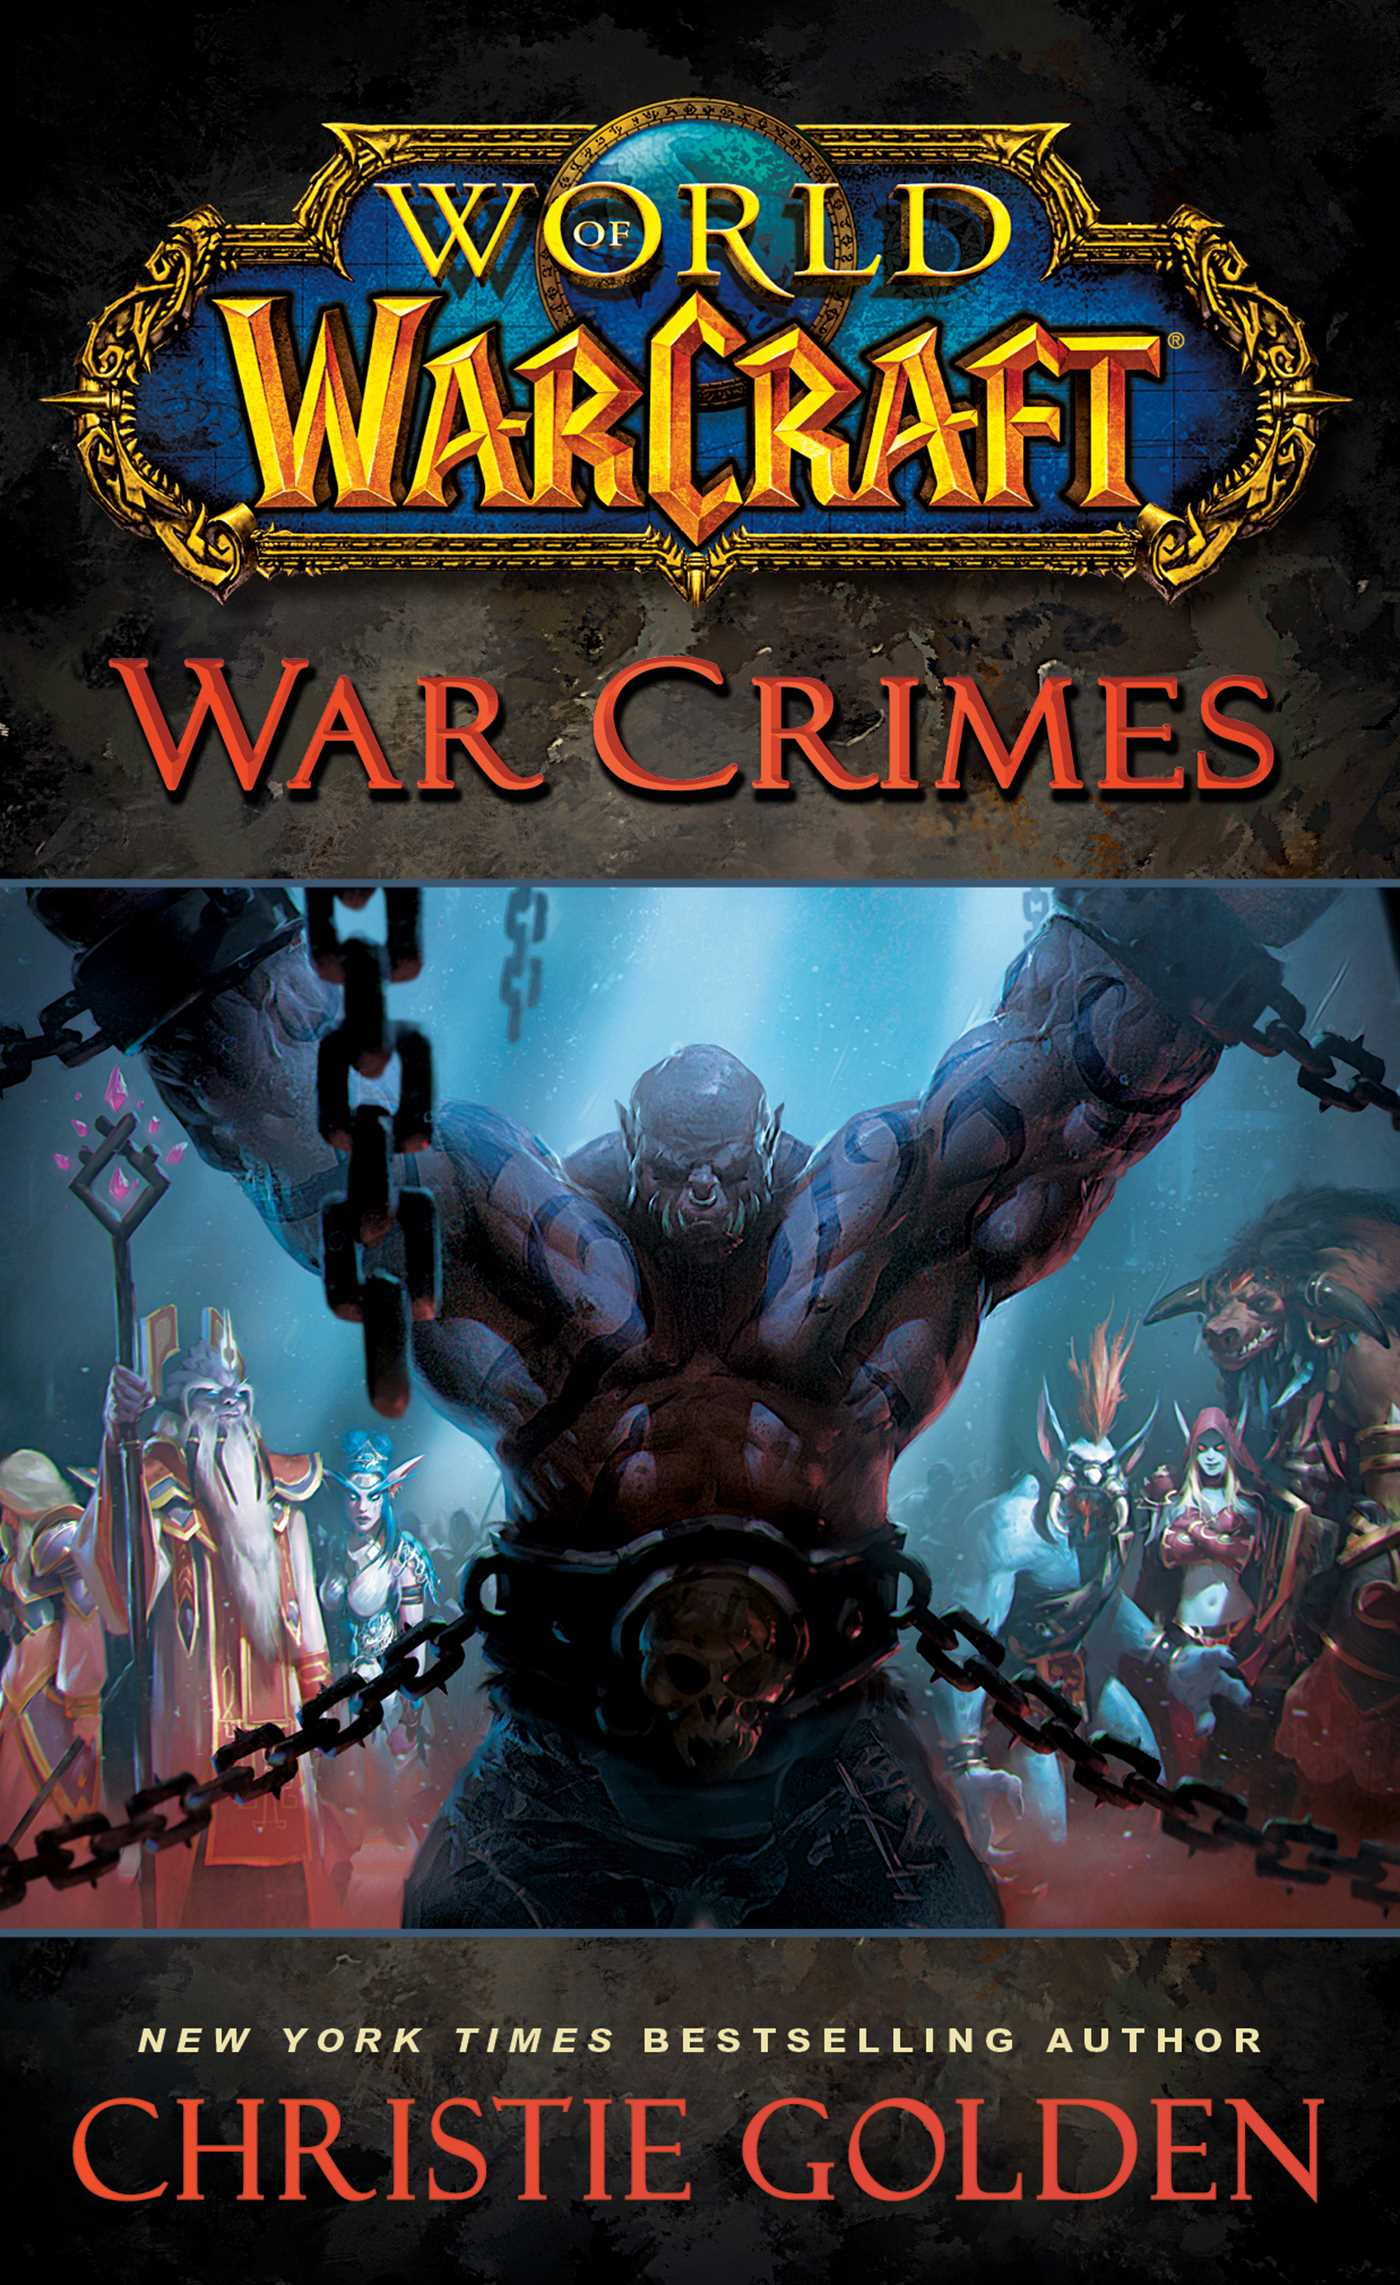 World of warcraft war crimes 9780743471305 hr